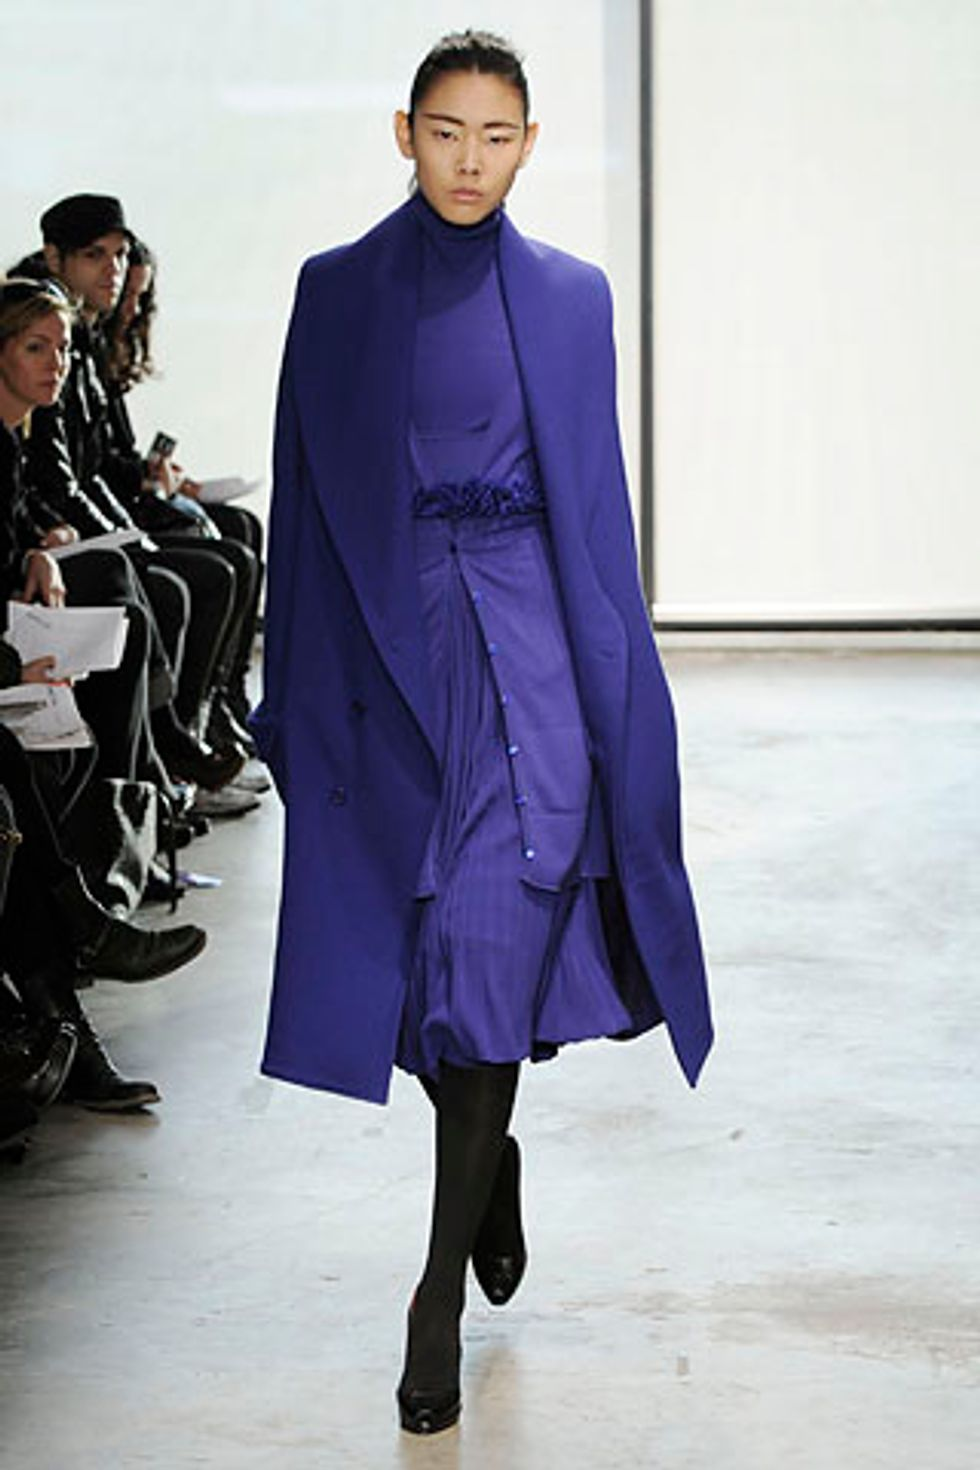 The Look is Hard Edged Chic at Ohne Titel